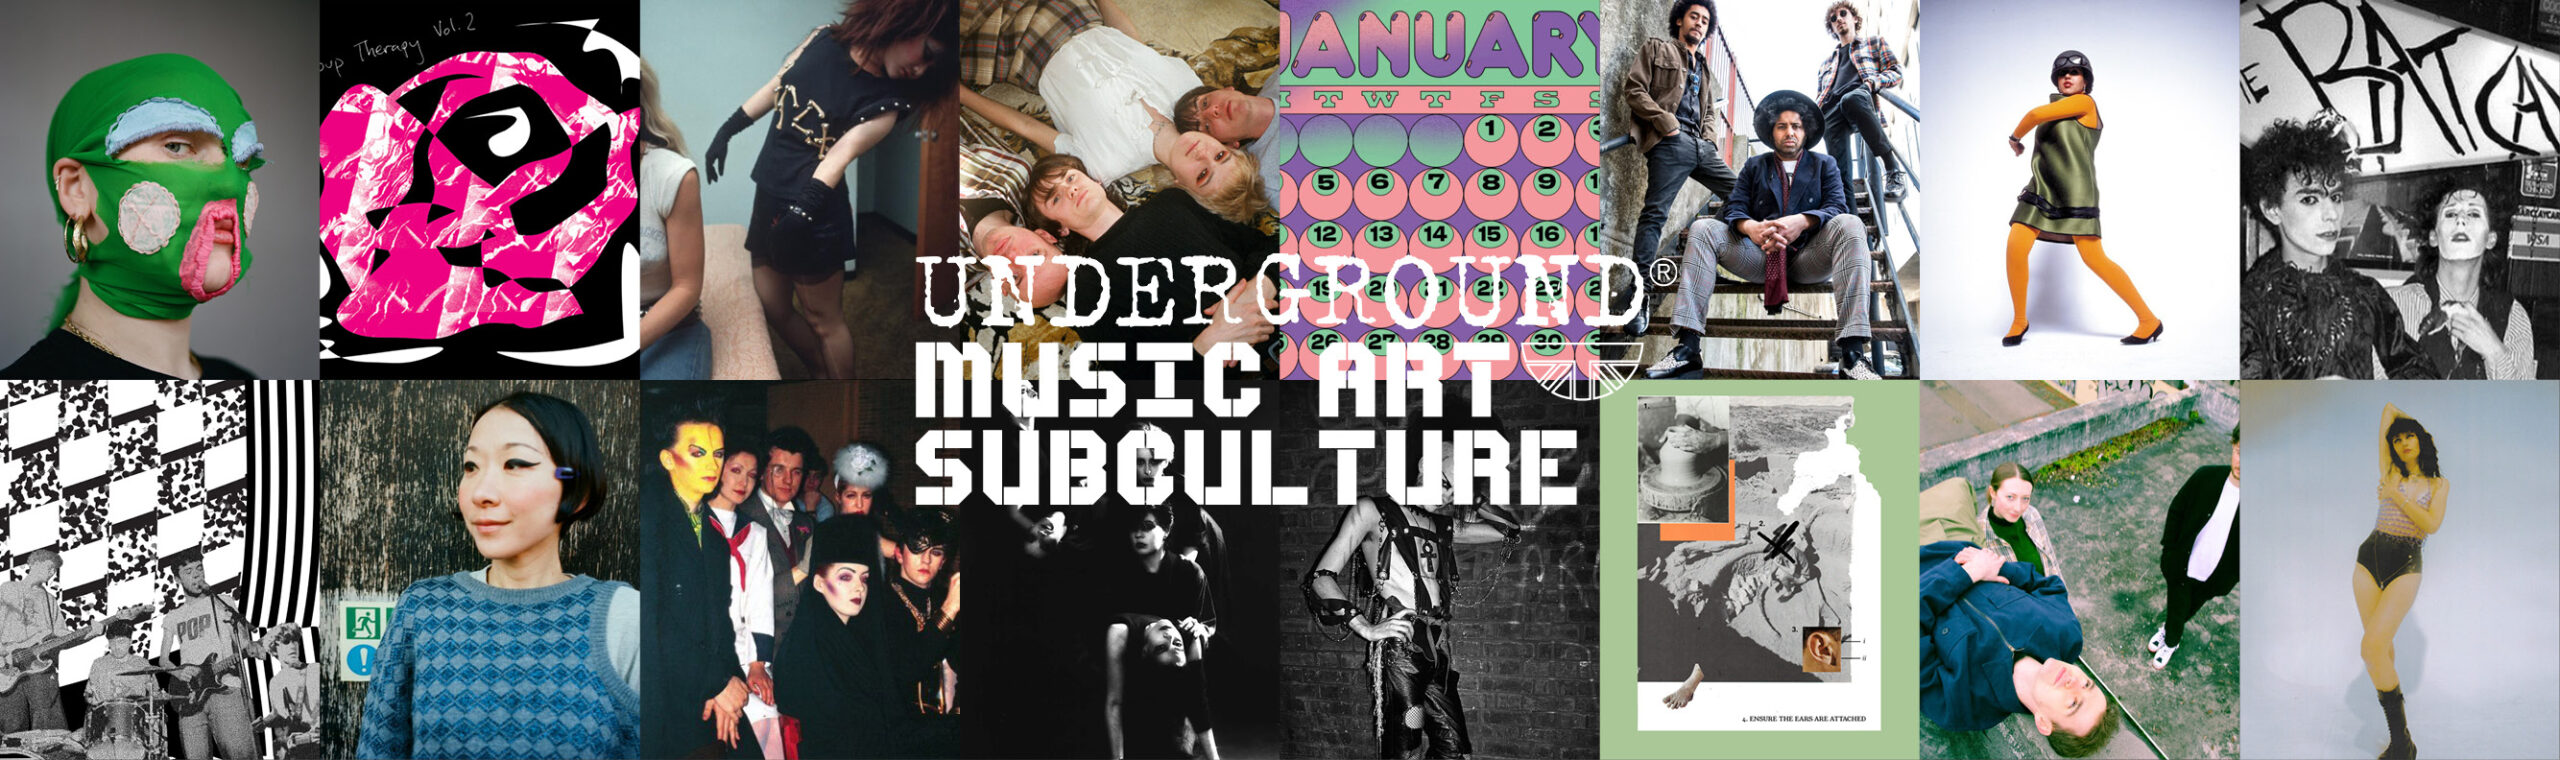 Music Art Subculture Banner